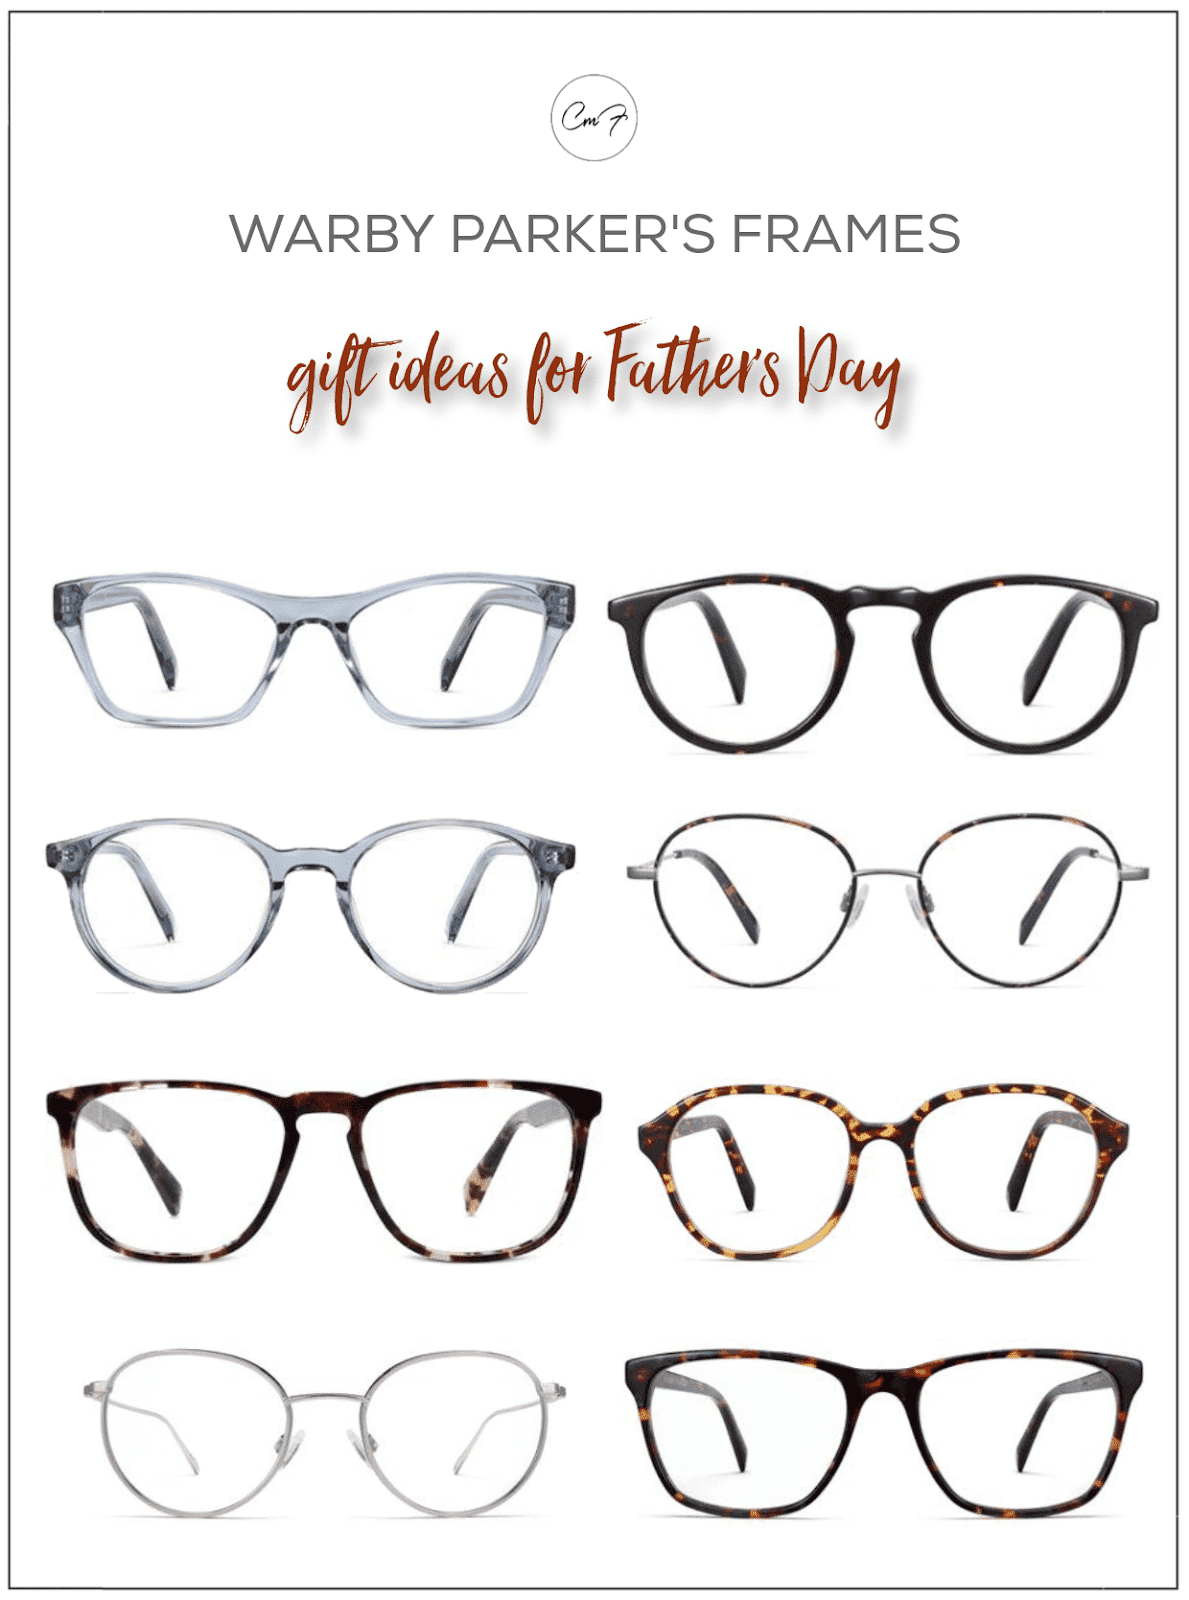 gifts for father's day eyeglasses ideas